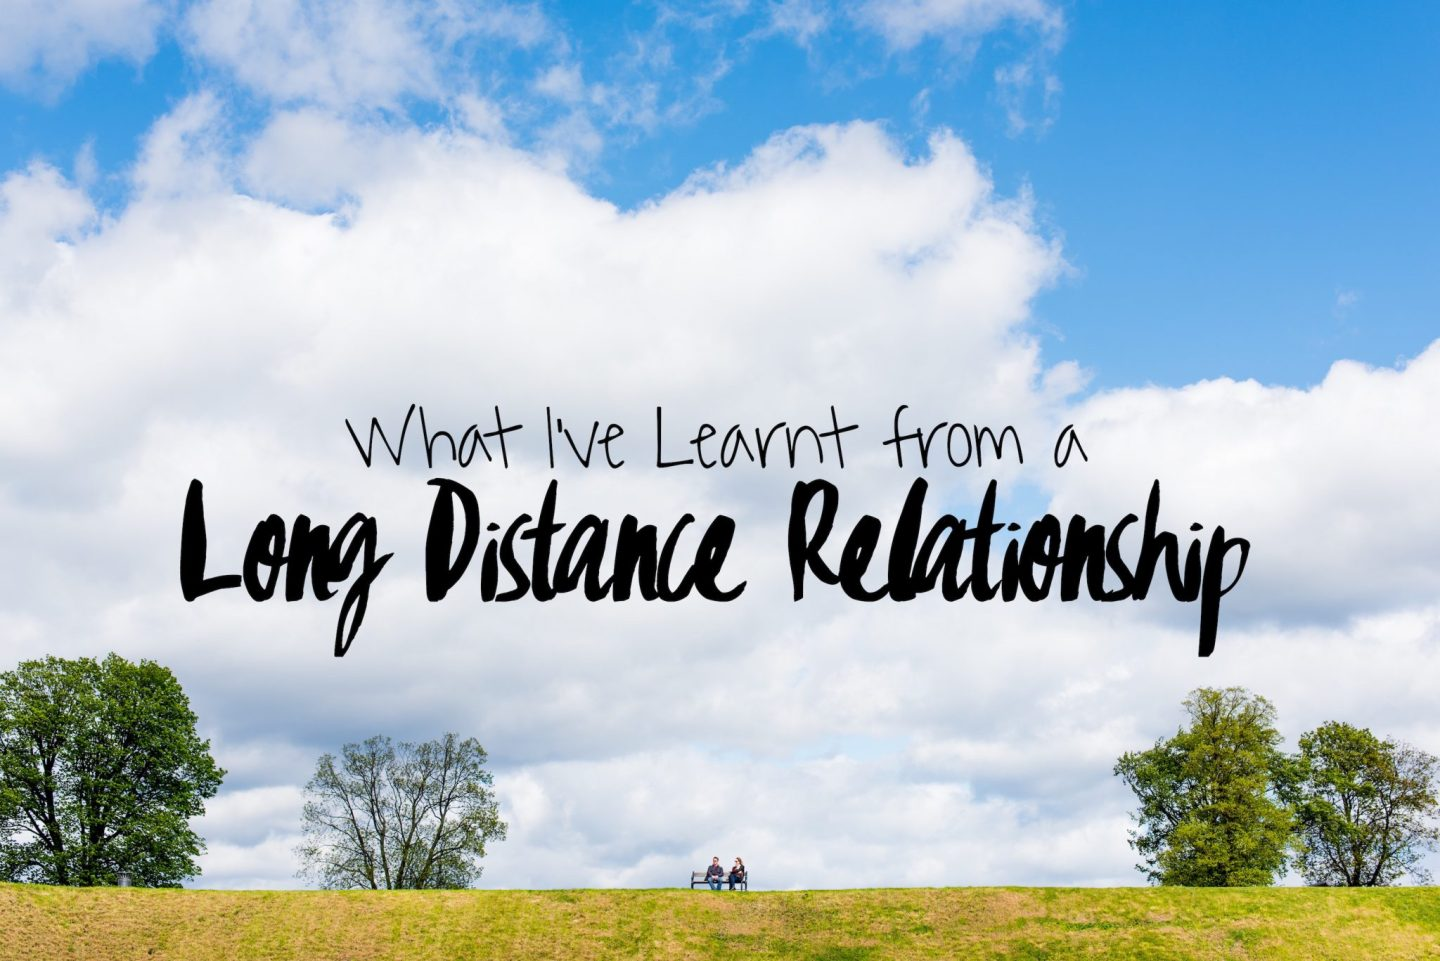 What I've Learnt from a Long Distance Relationship